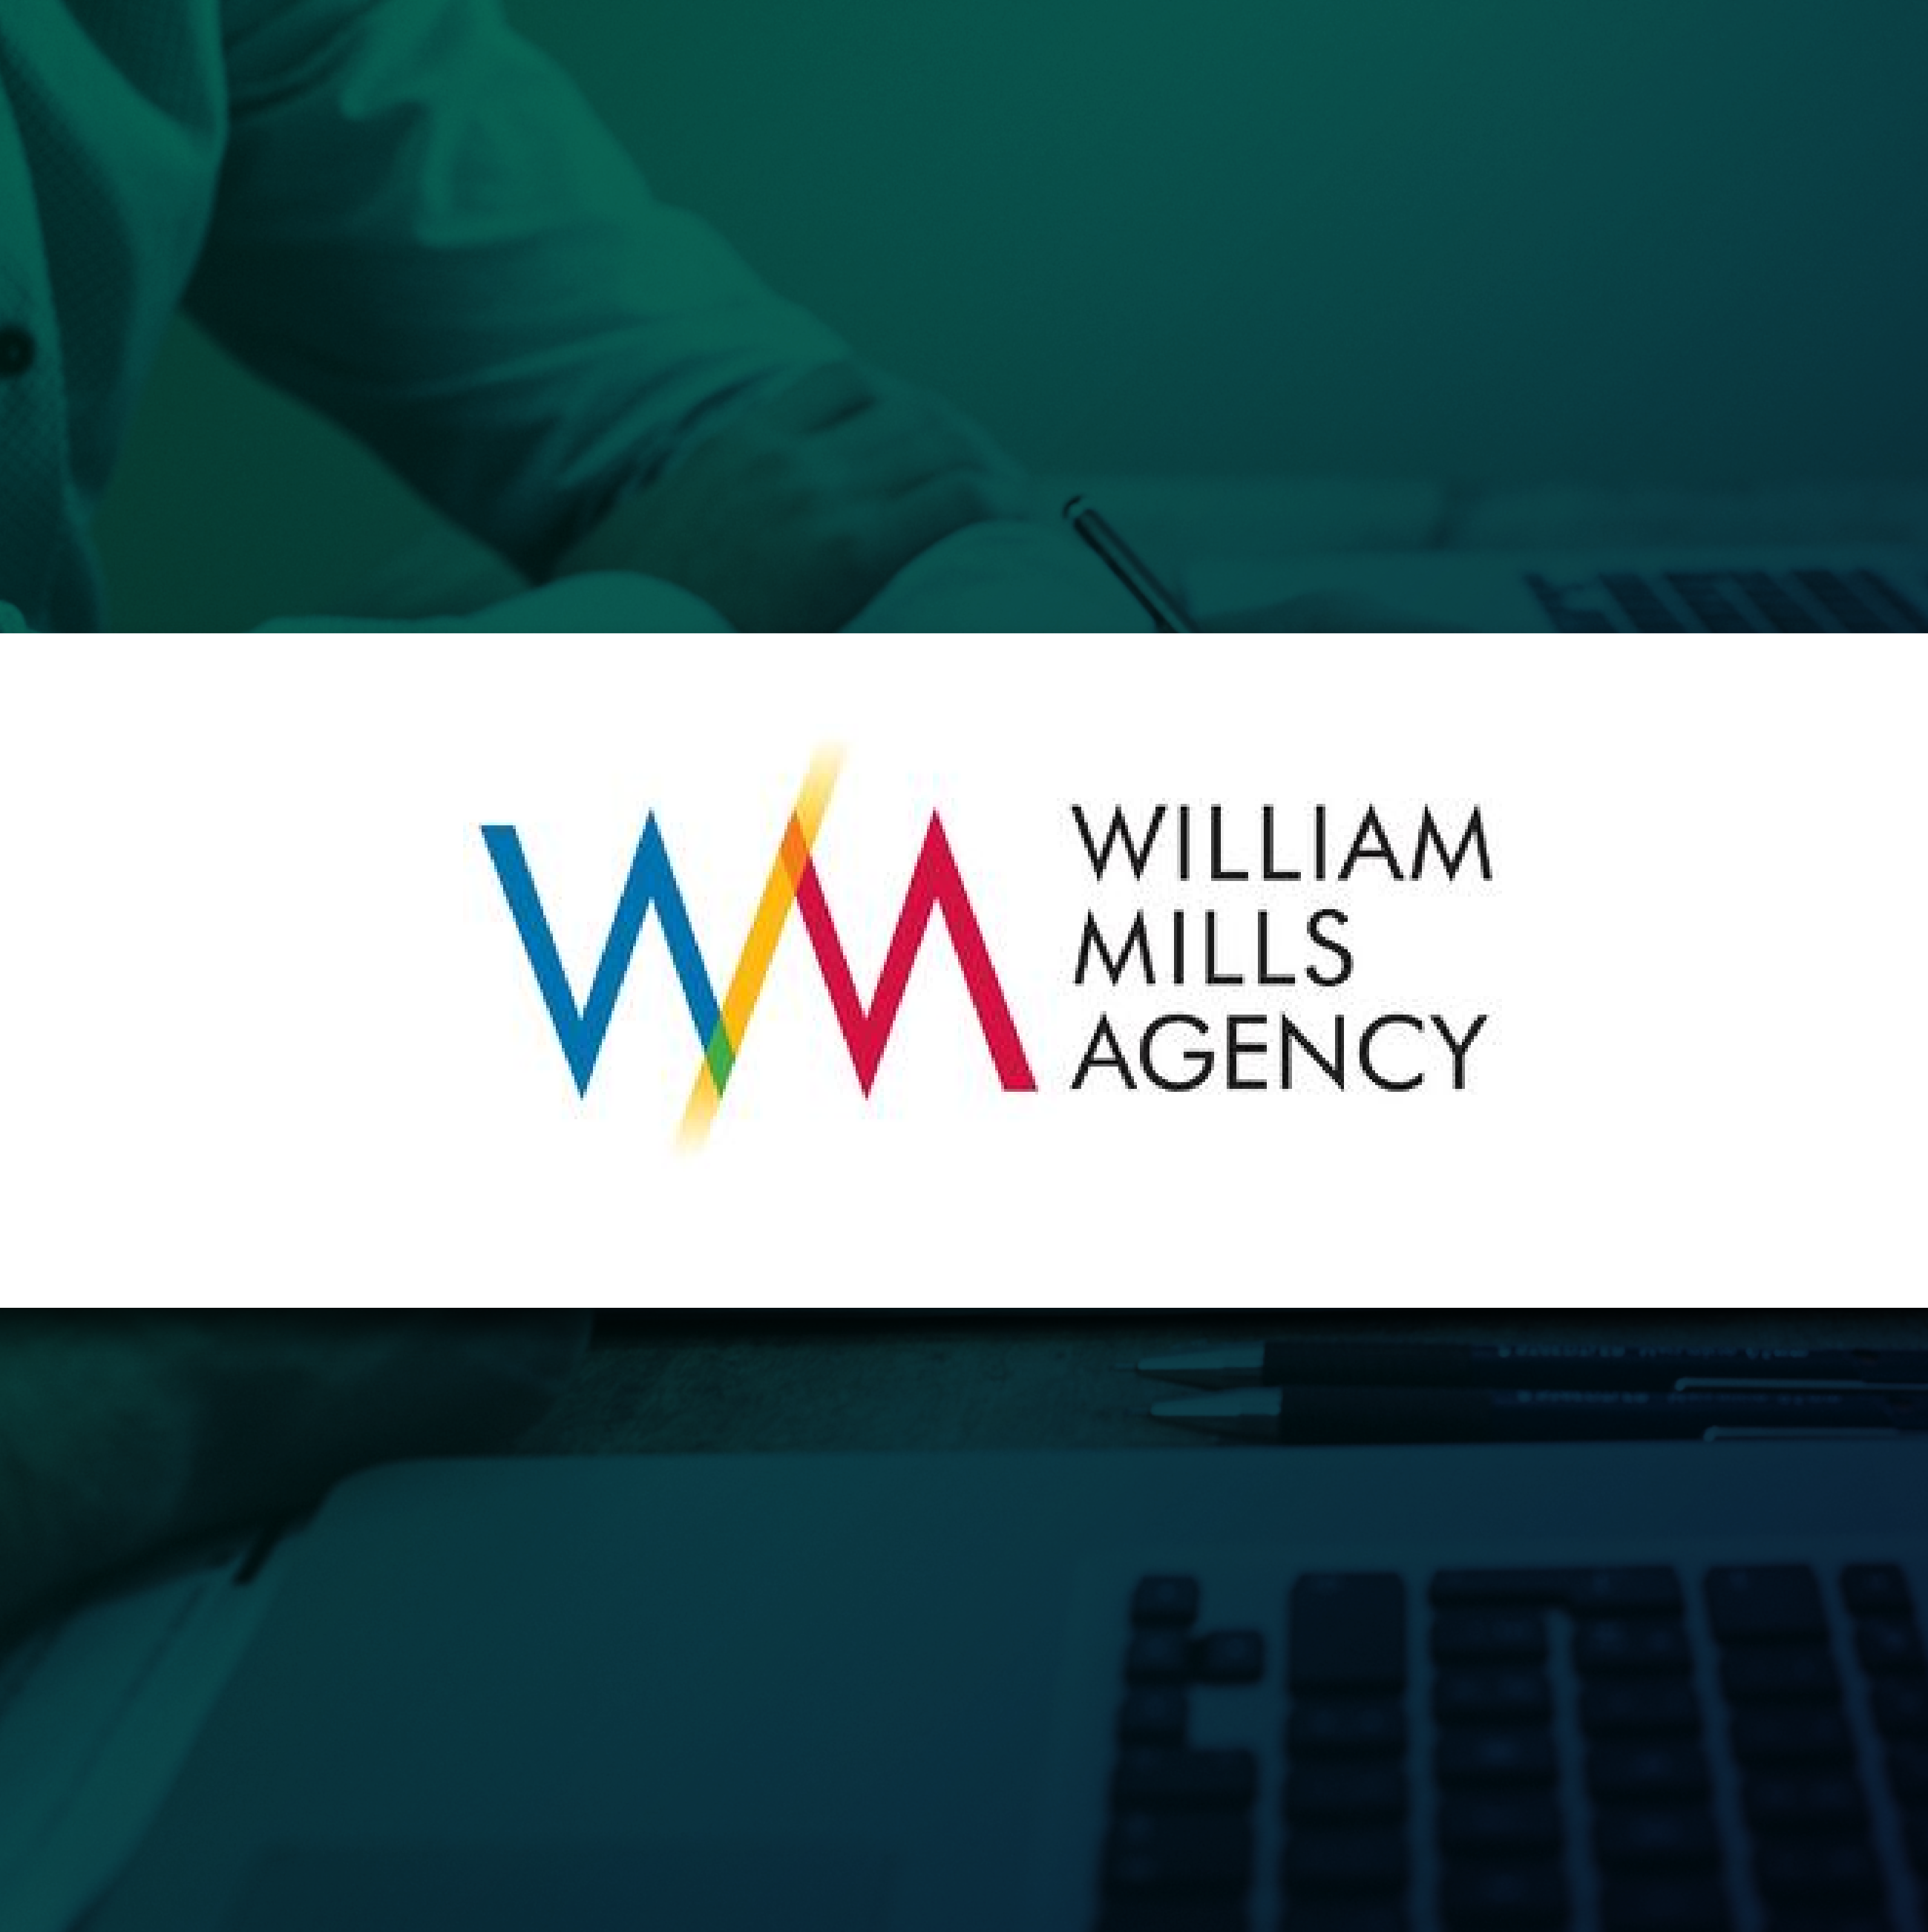 Williams Mills Agency logo